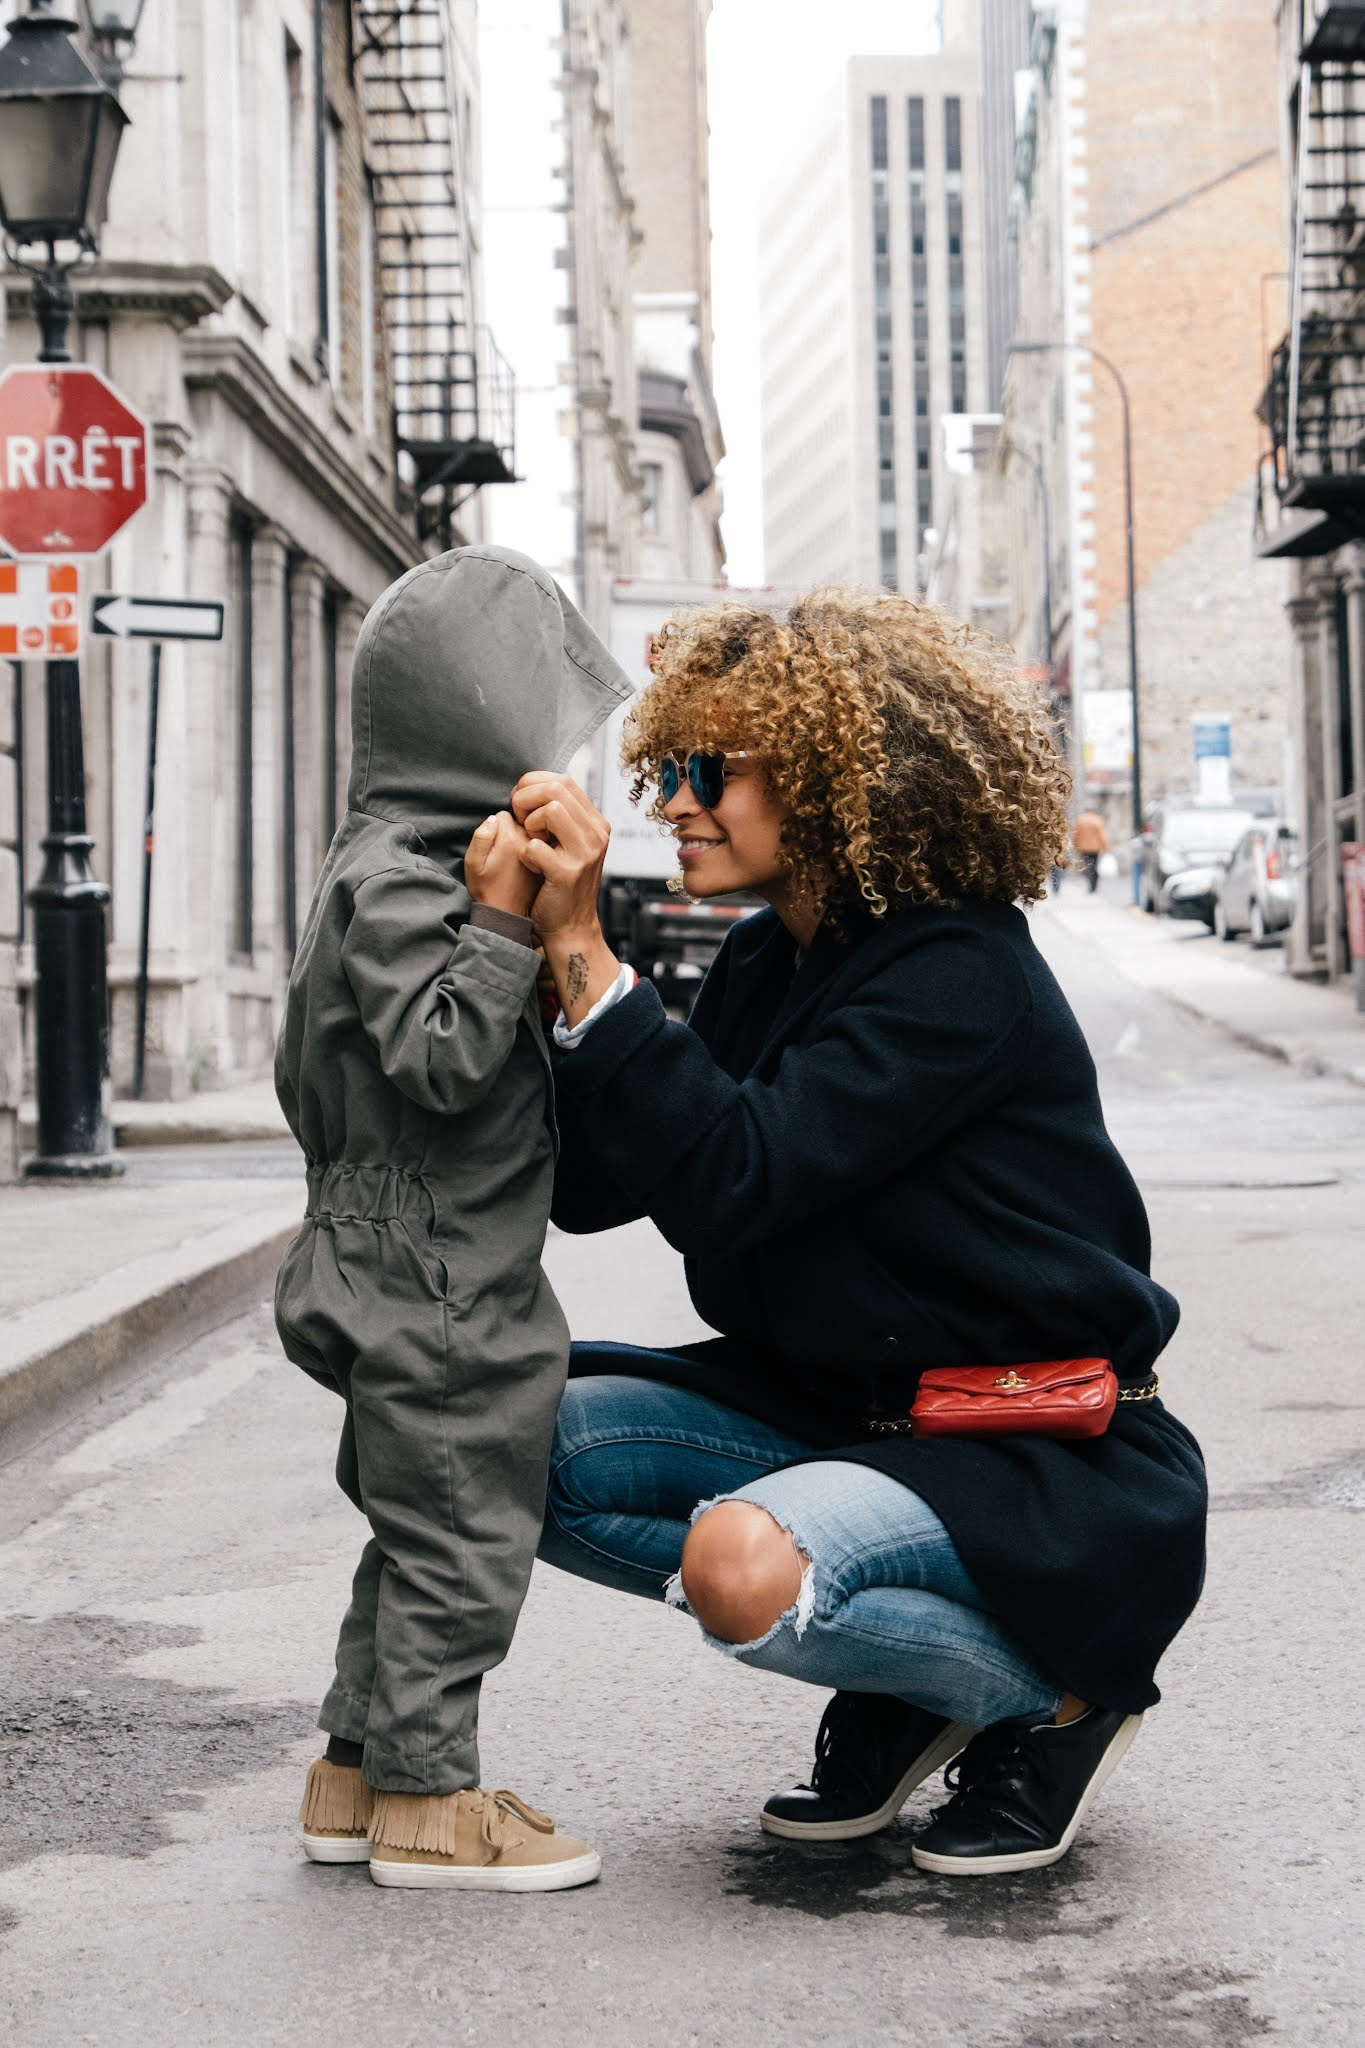 woman and toddler are wearing stylish outfits and posing on the street